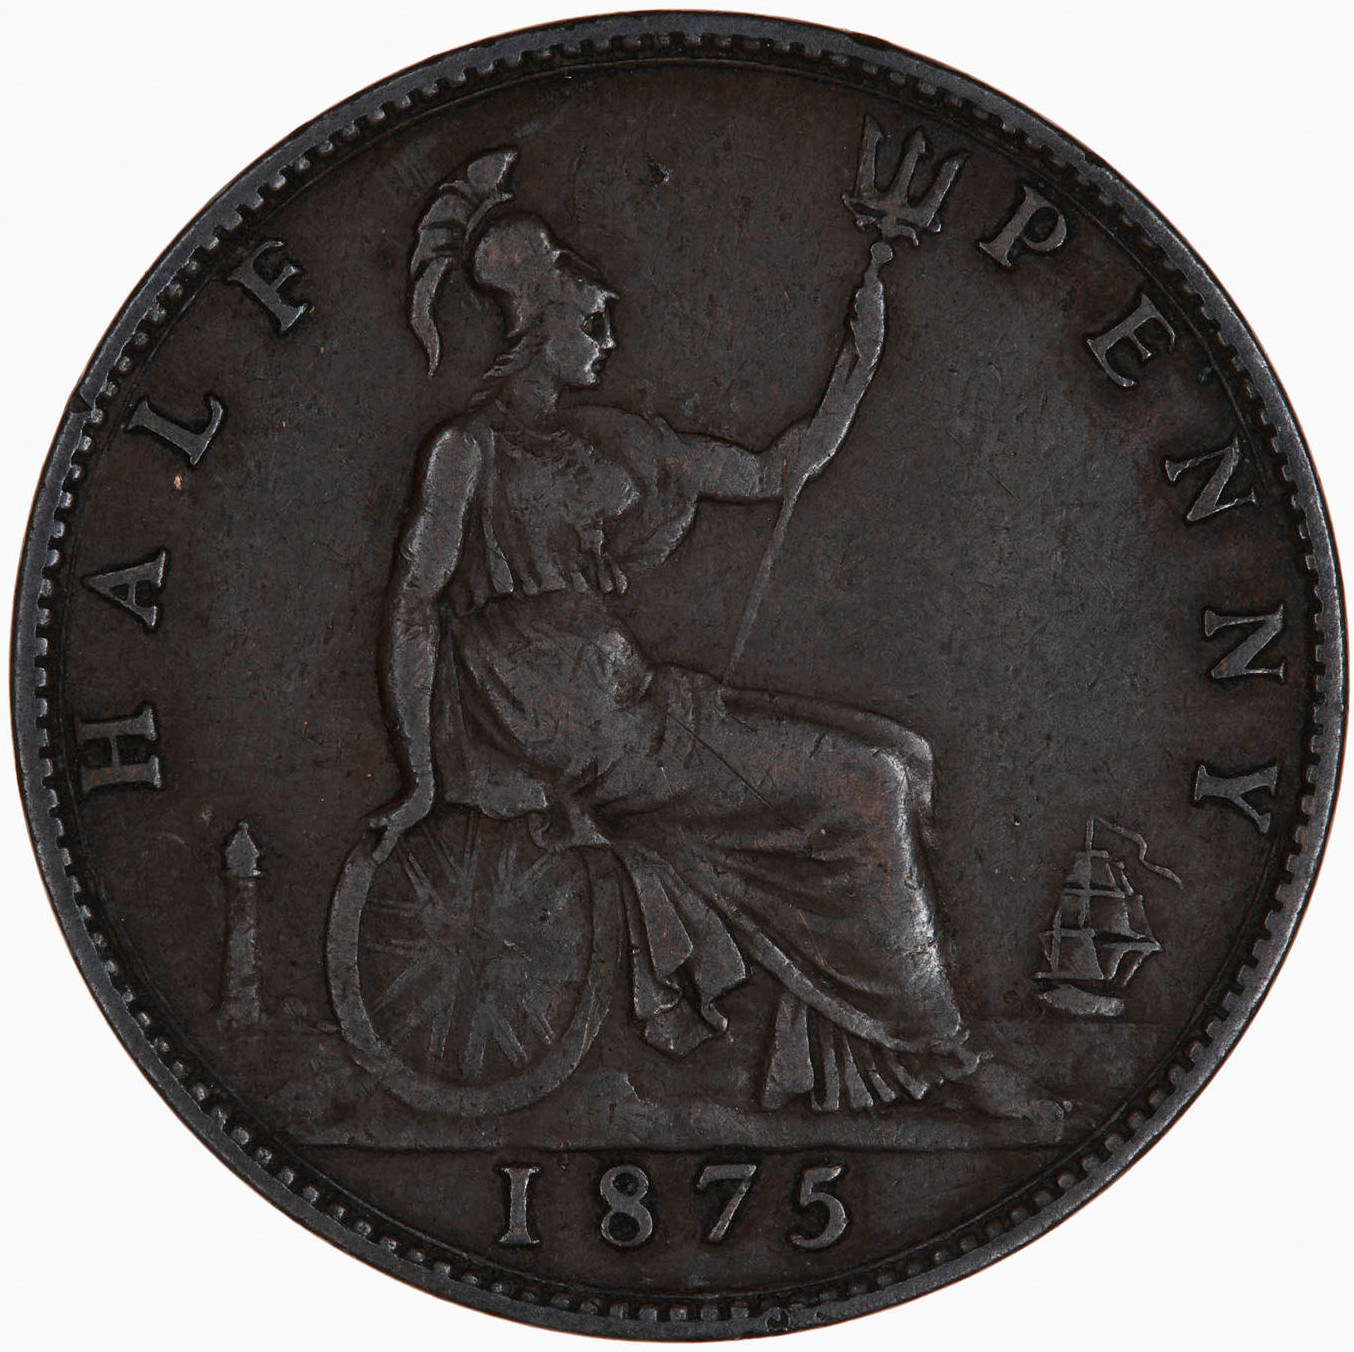 Halfpenny 1875: Photo Coin - Halfpenny, Queen Victoria, Great Britain, 1875